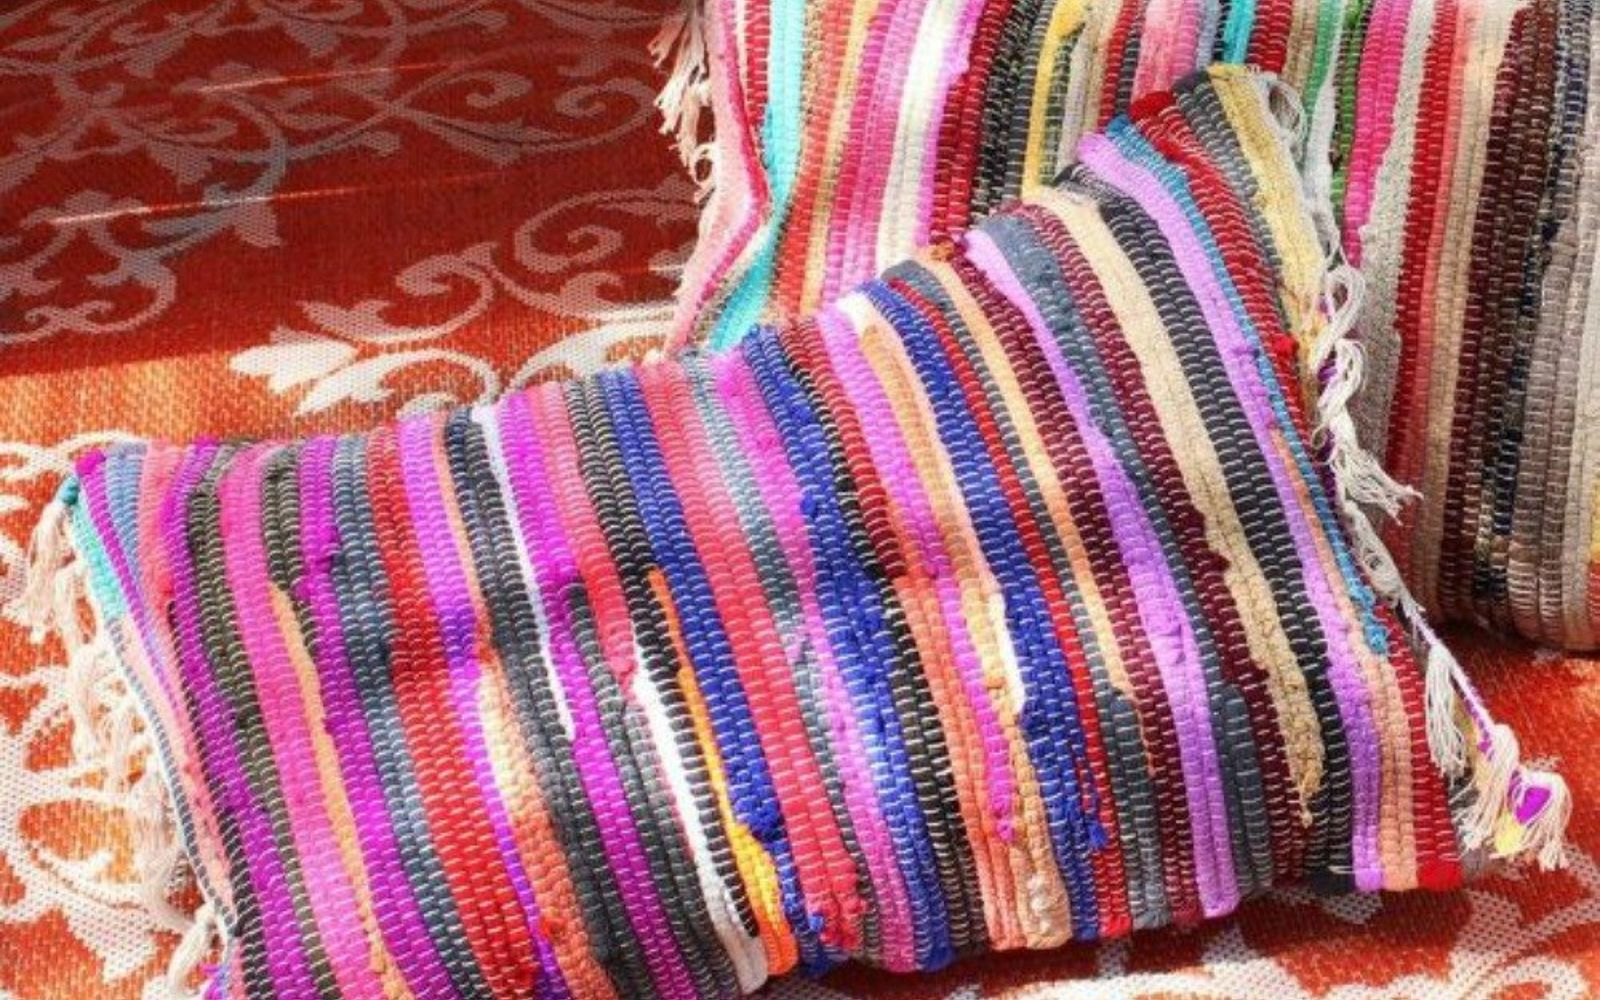 s transform dollar store rugs with these 11 stunning ideas, reupholster, Glue them to copy this lovely patio pillow